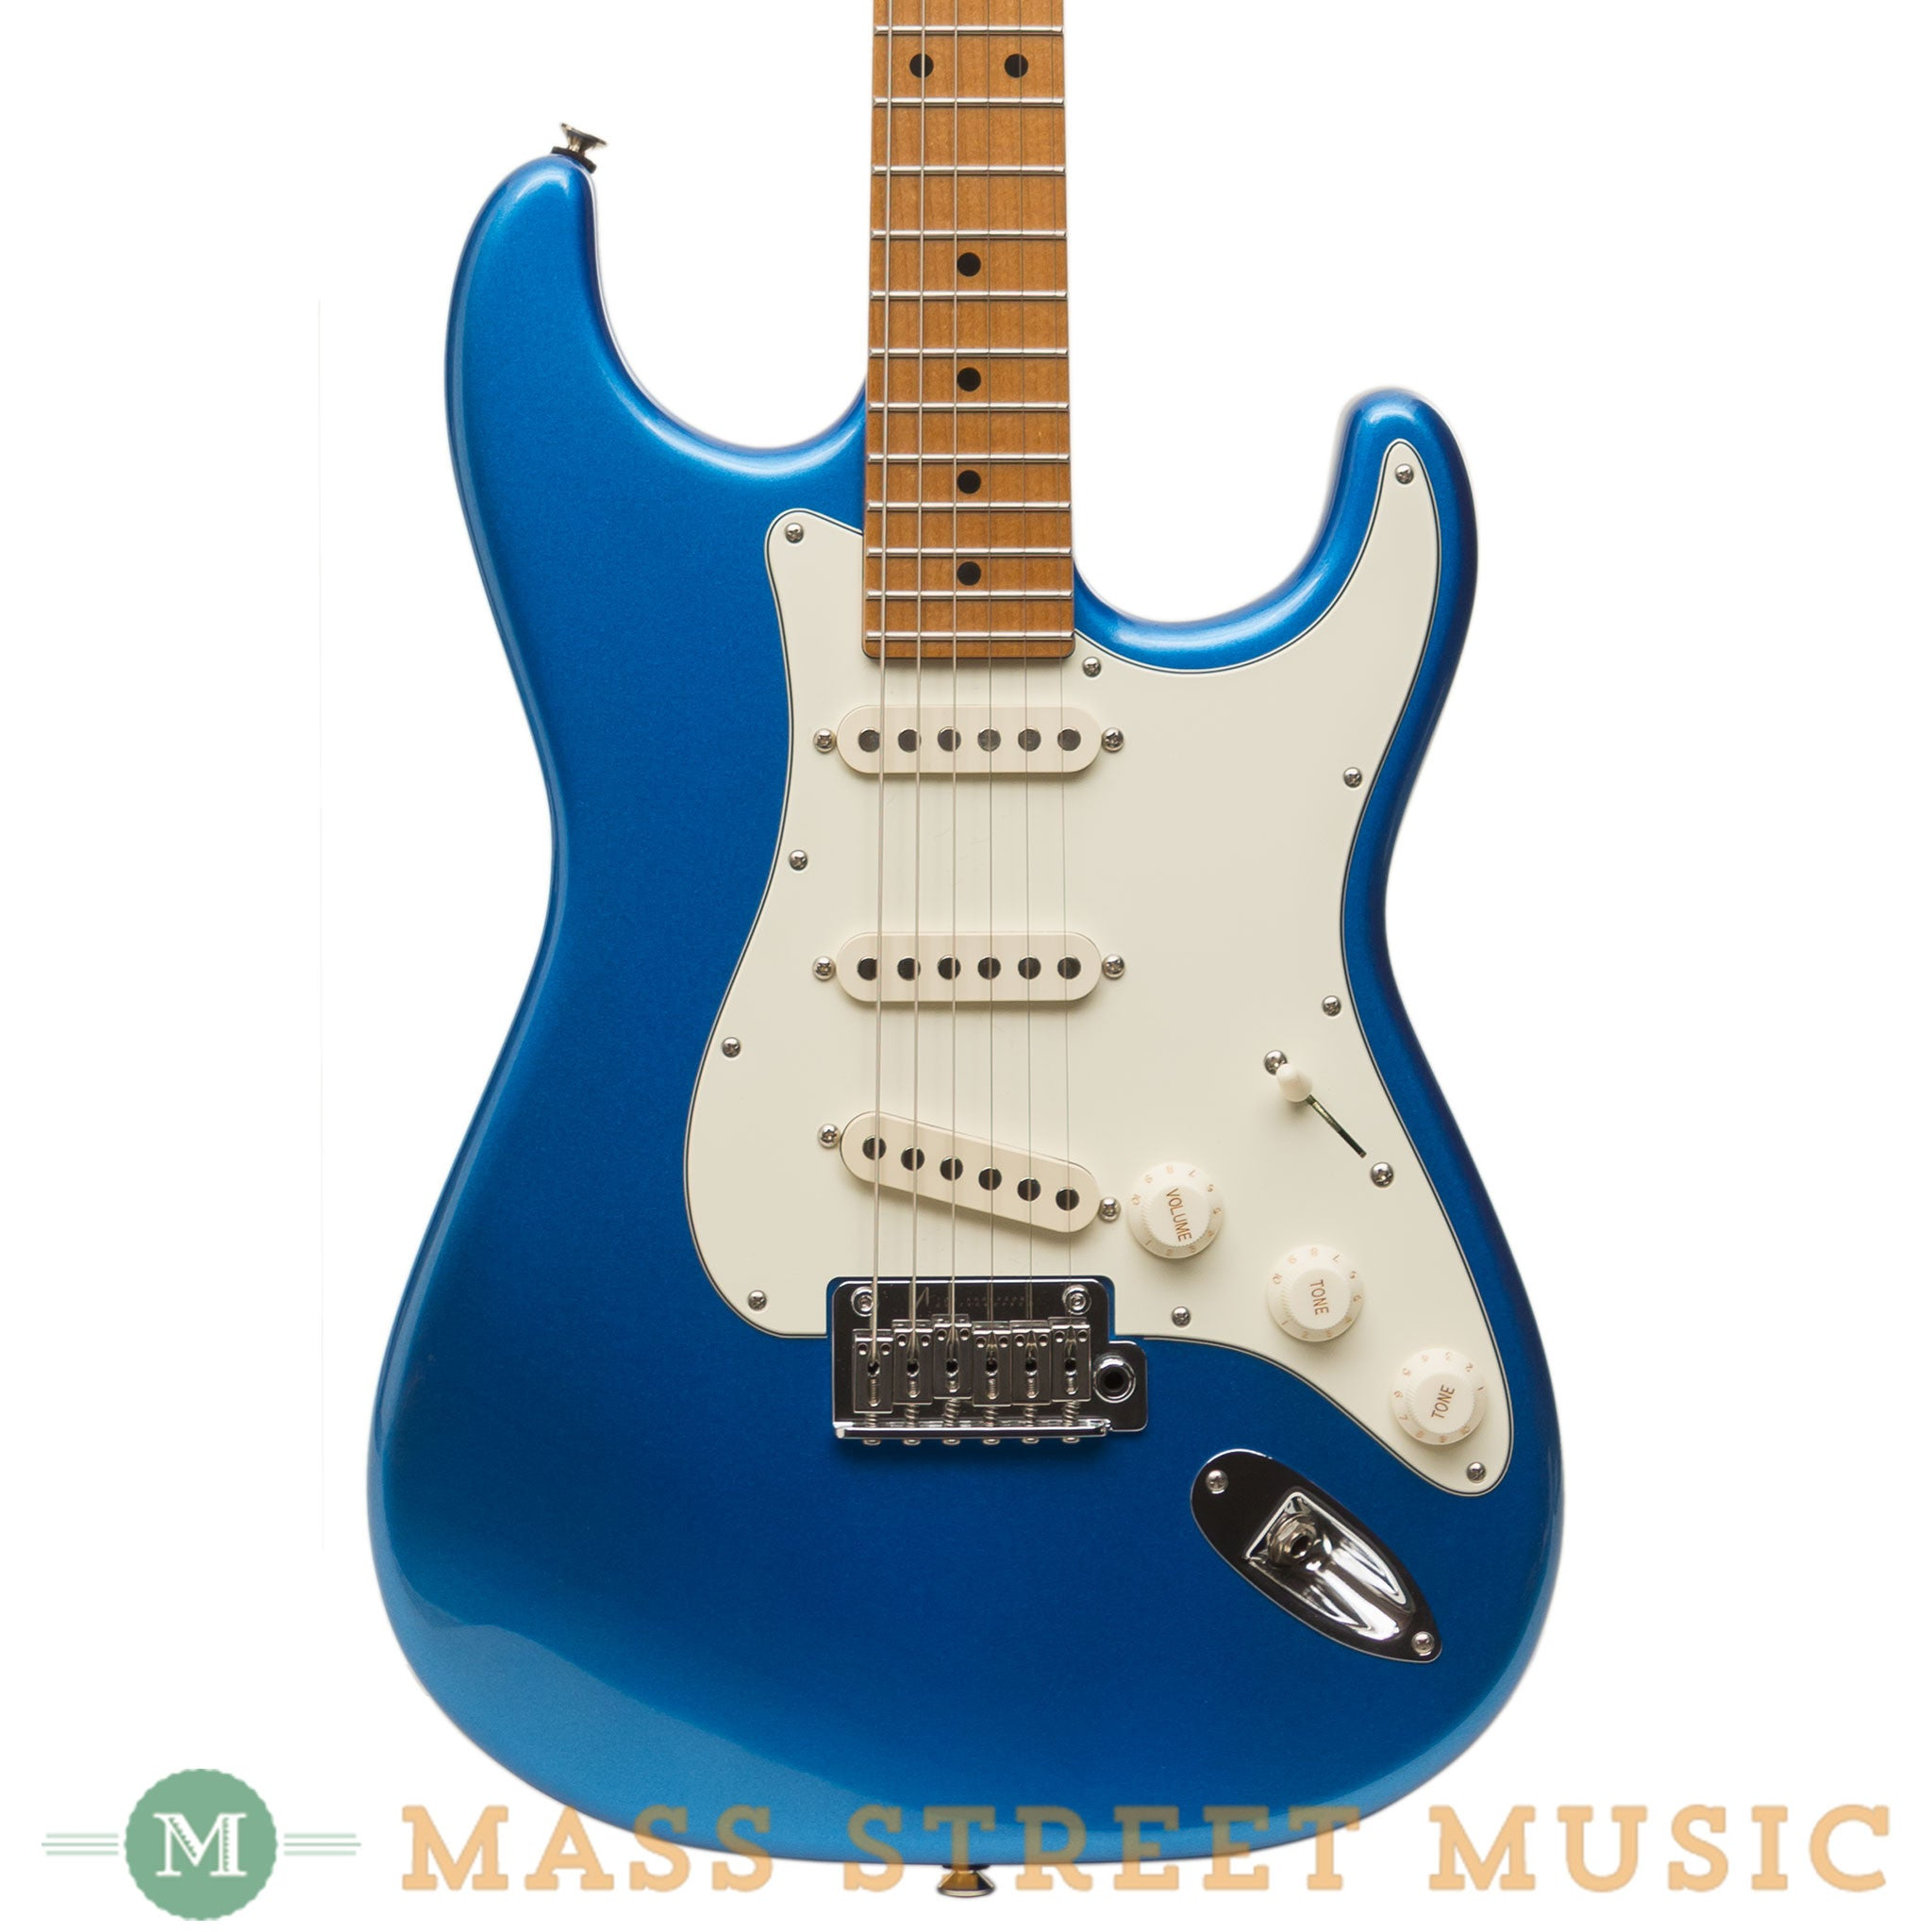 tom anderson electric guitars icon classic lake placid blue mass street music store. Black Bedroom Furniture Sets. Home Design Ideas